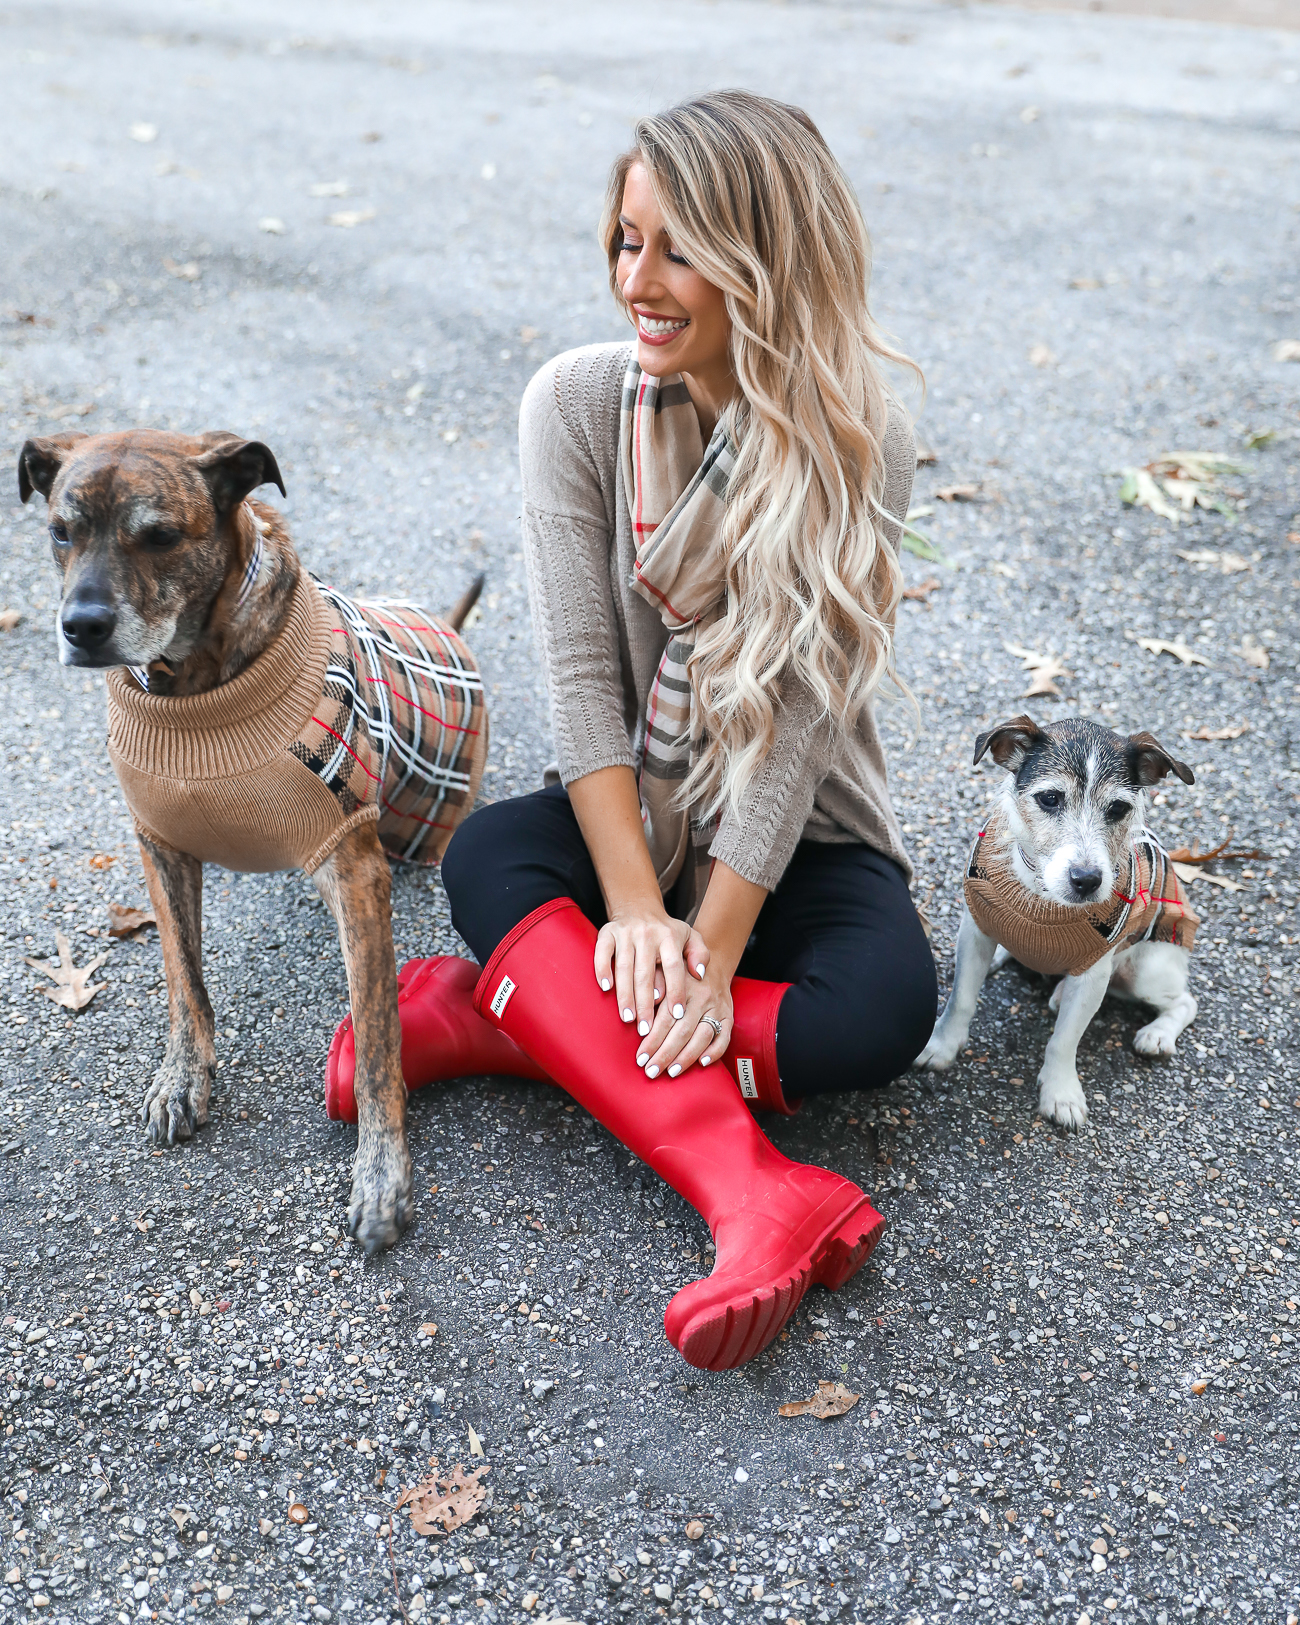 Thangsgiving Day Outfit Idea Red Hunter Boots Burberry Scarf Dog sweater Casual Holiday Outfit Idea